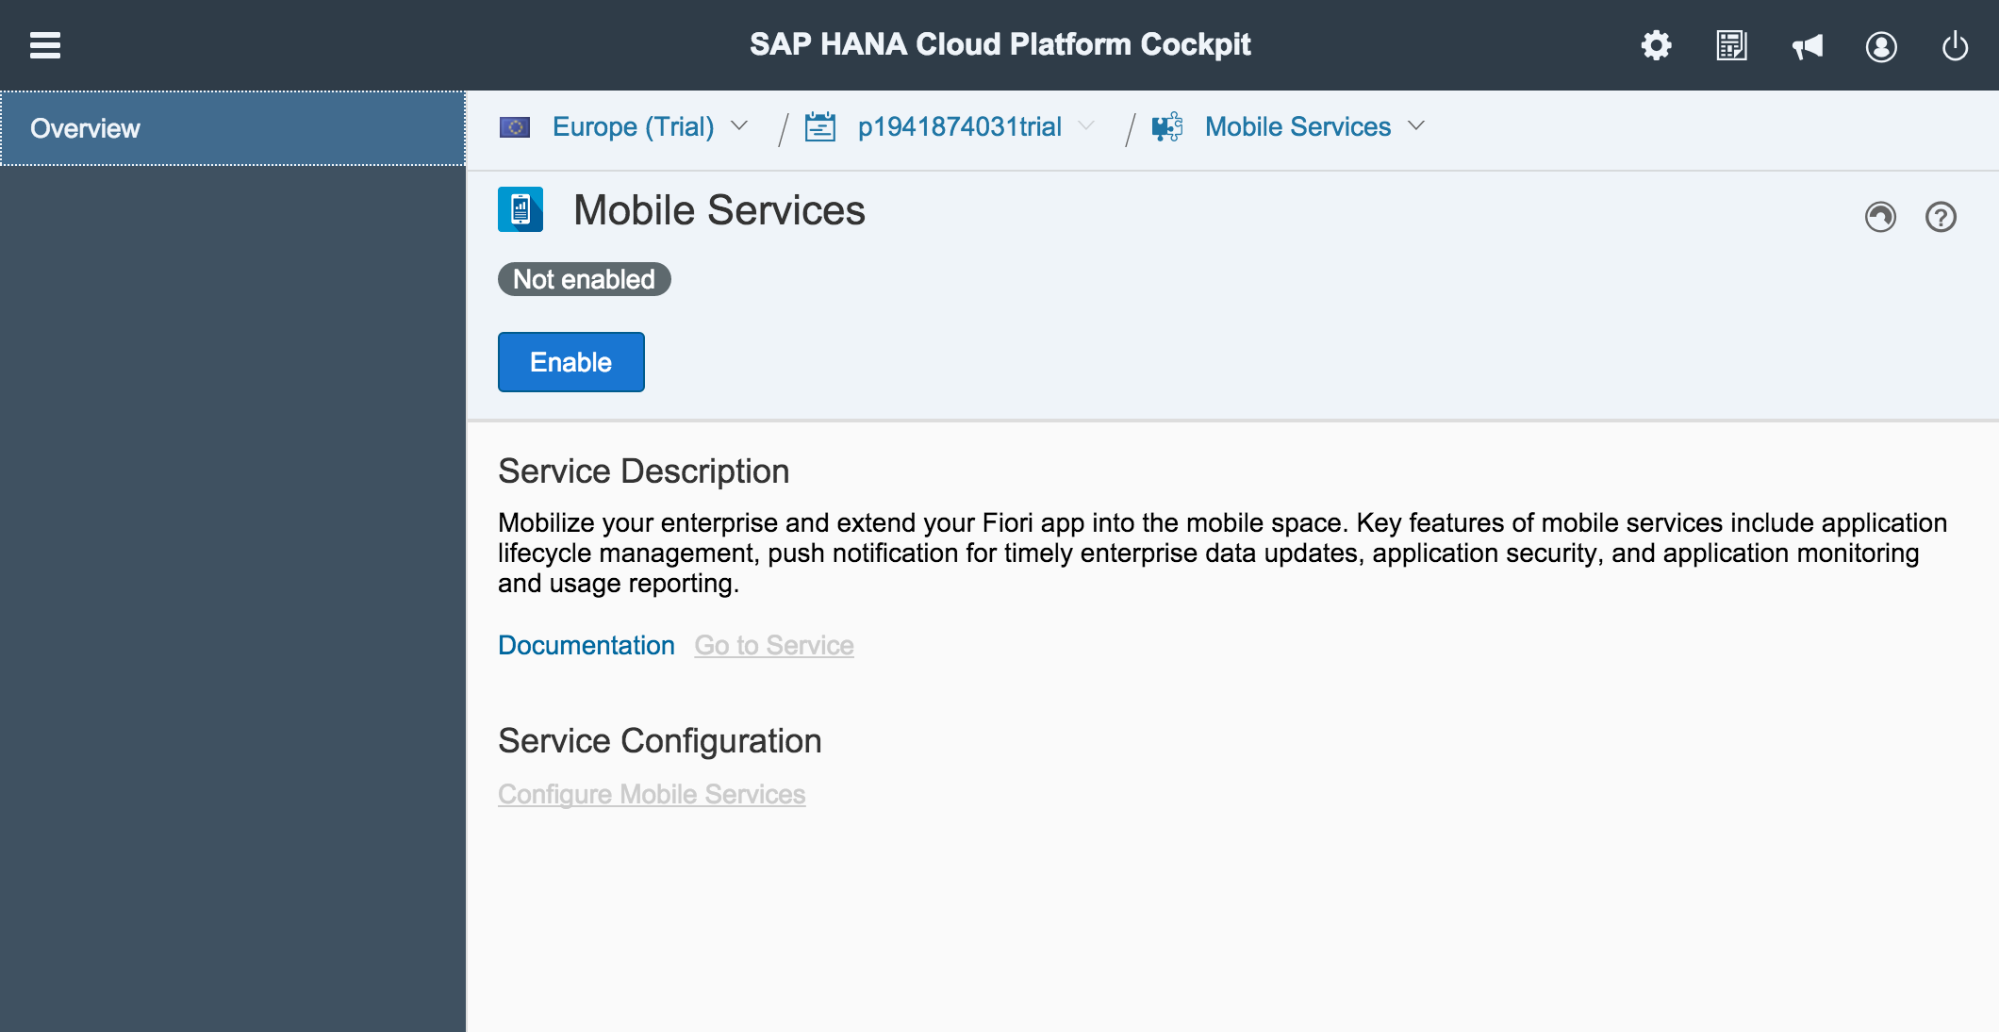 sap-hana blog-post-image2 JR